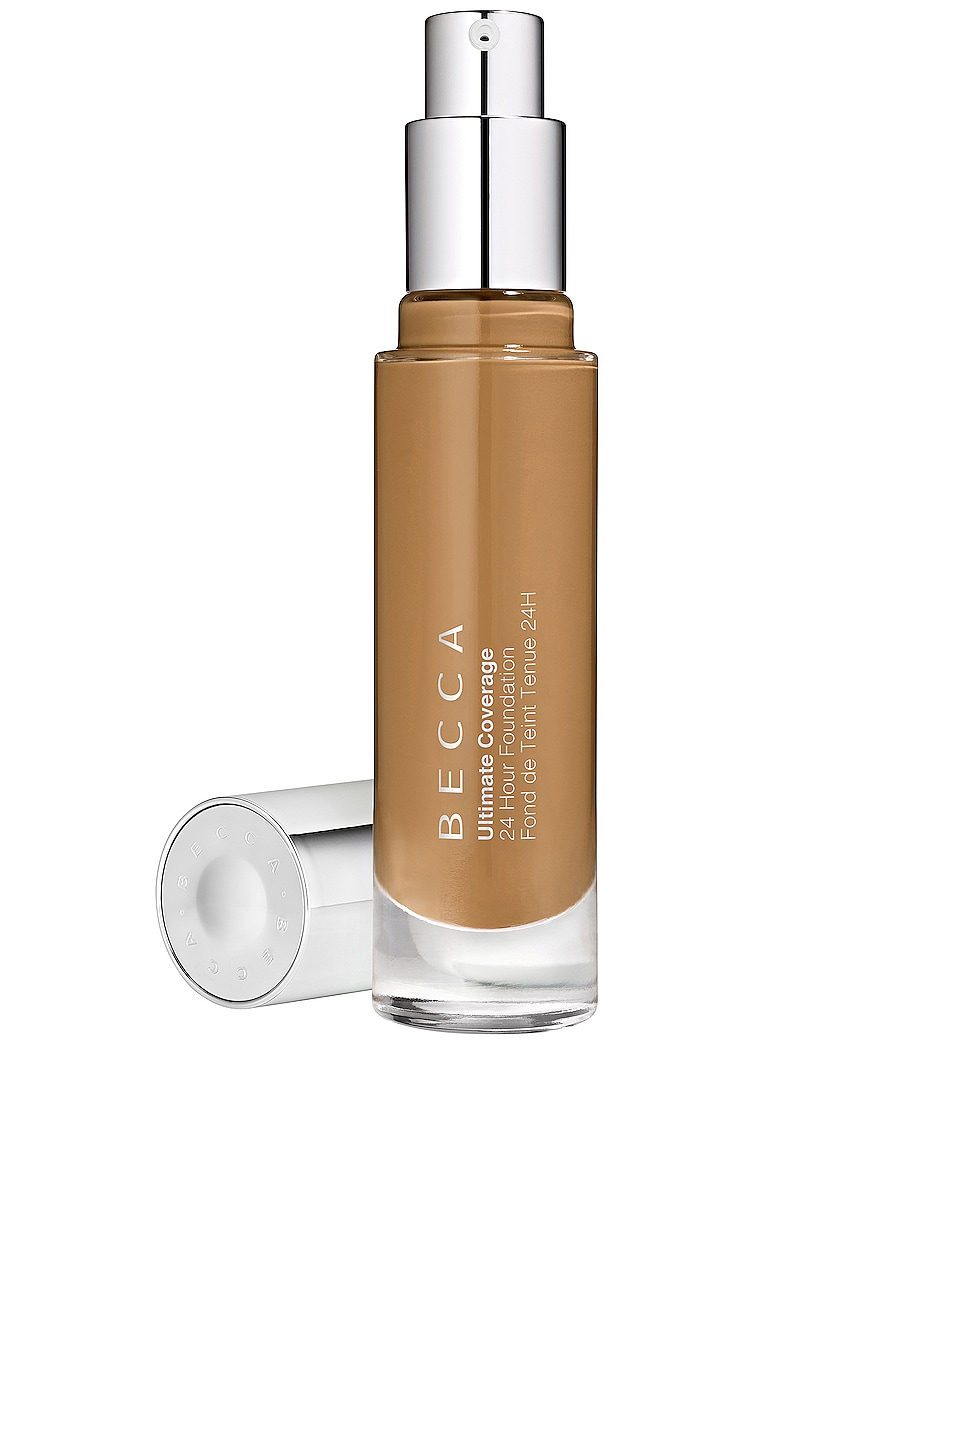 BECCA Ultimate Coverage 24 Hour Foundation in Tan